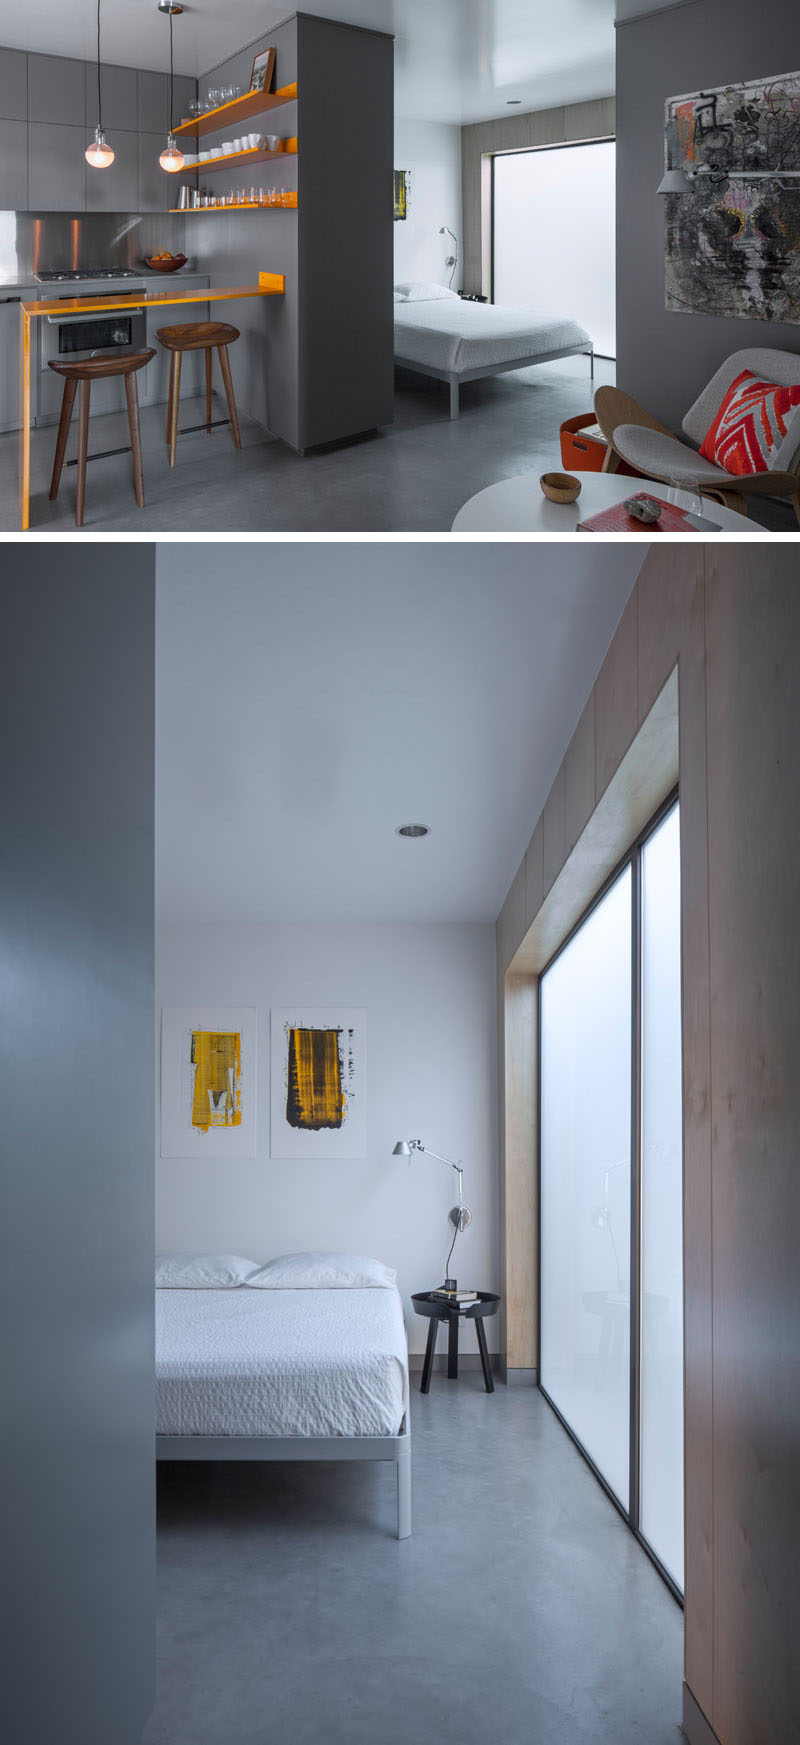 In this micro apartment, full height hidden storage delineates space and provides visual and acoustic privacy for the open bedroom. #InteriorDesign #MicroApartment #SmallInterior